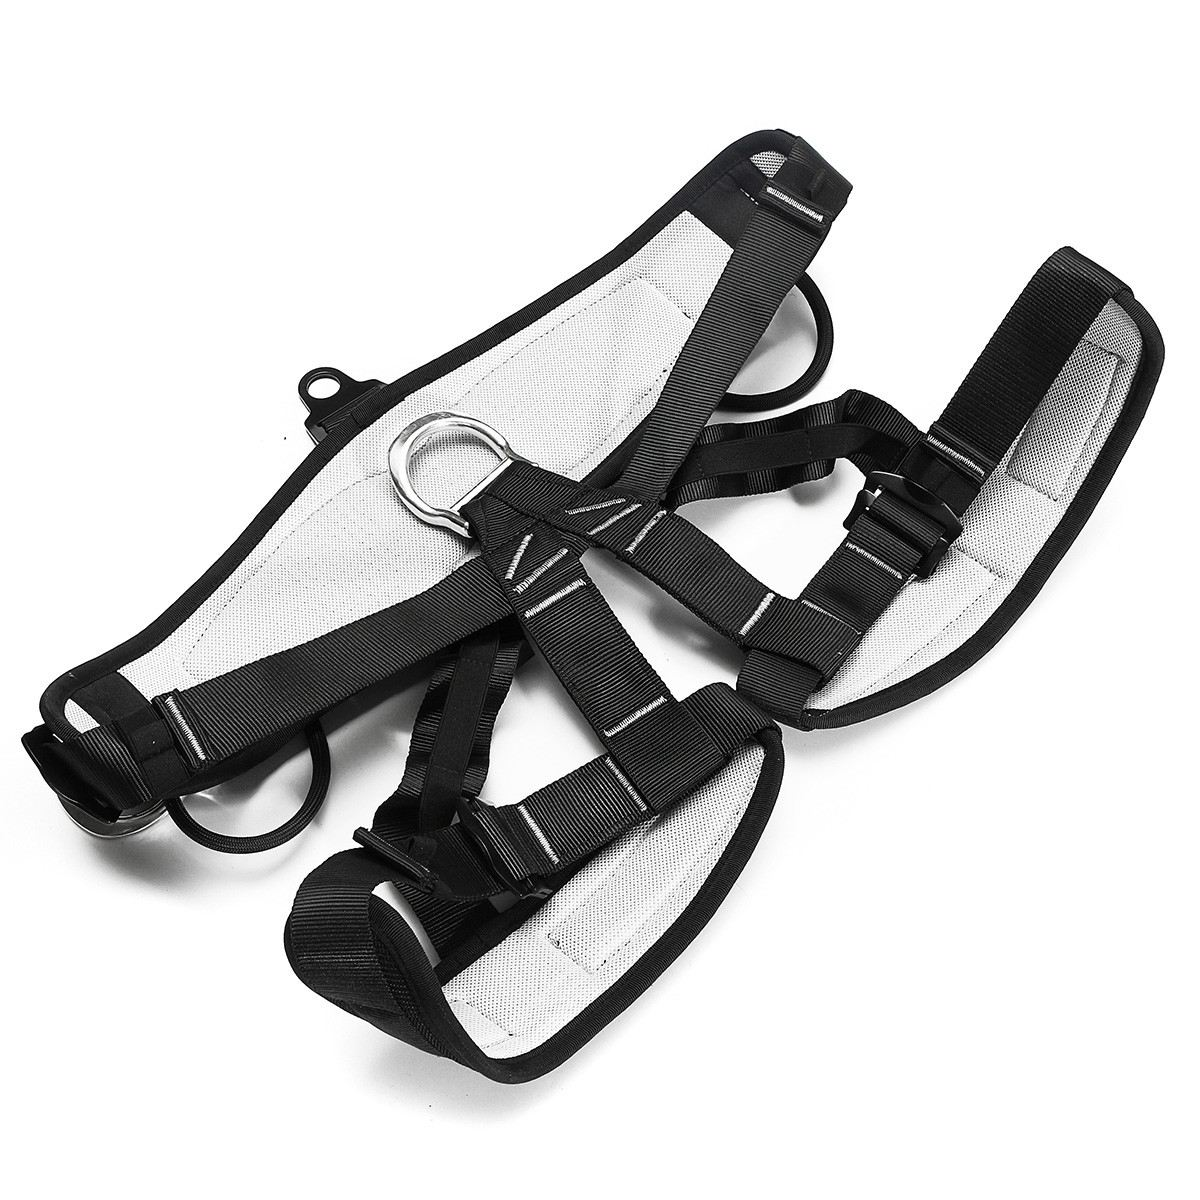 Outdoor Climbing Harness Seat Belt High strength Safety Rappelling belts Downhill Rappel Belts Adjustable Climb Rescue Equipment new professional safety rock tree climbing rappelling harness seat sitting bust belt safety harness